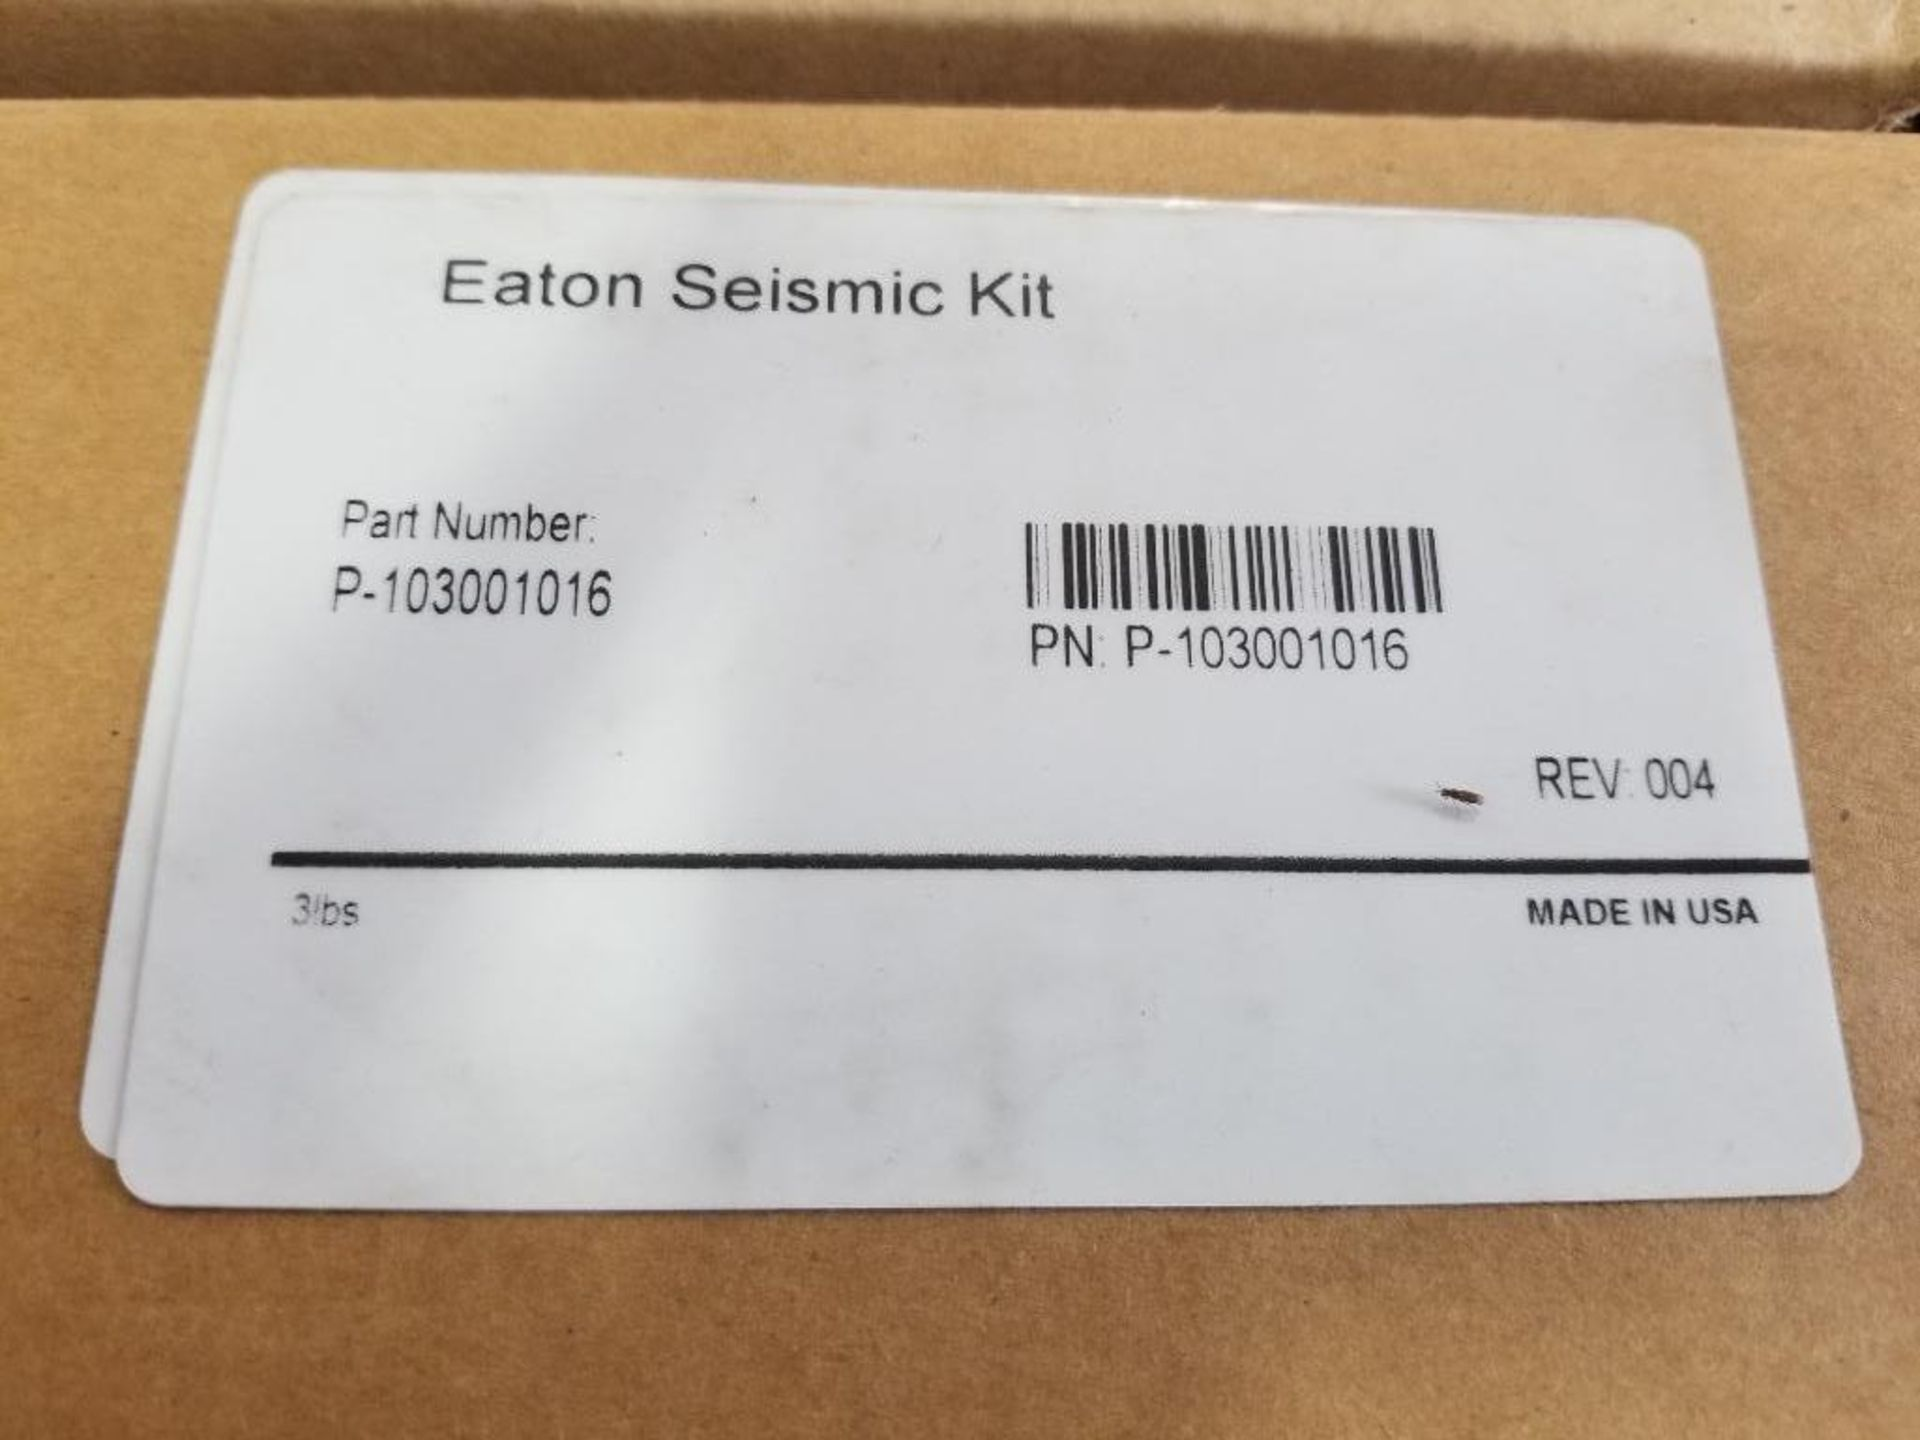 Qty 2 - Eaton Seismic Kit. Part number P-103001016. New in box. - Image 2 of 2